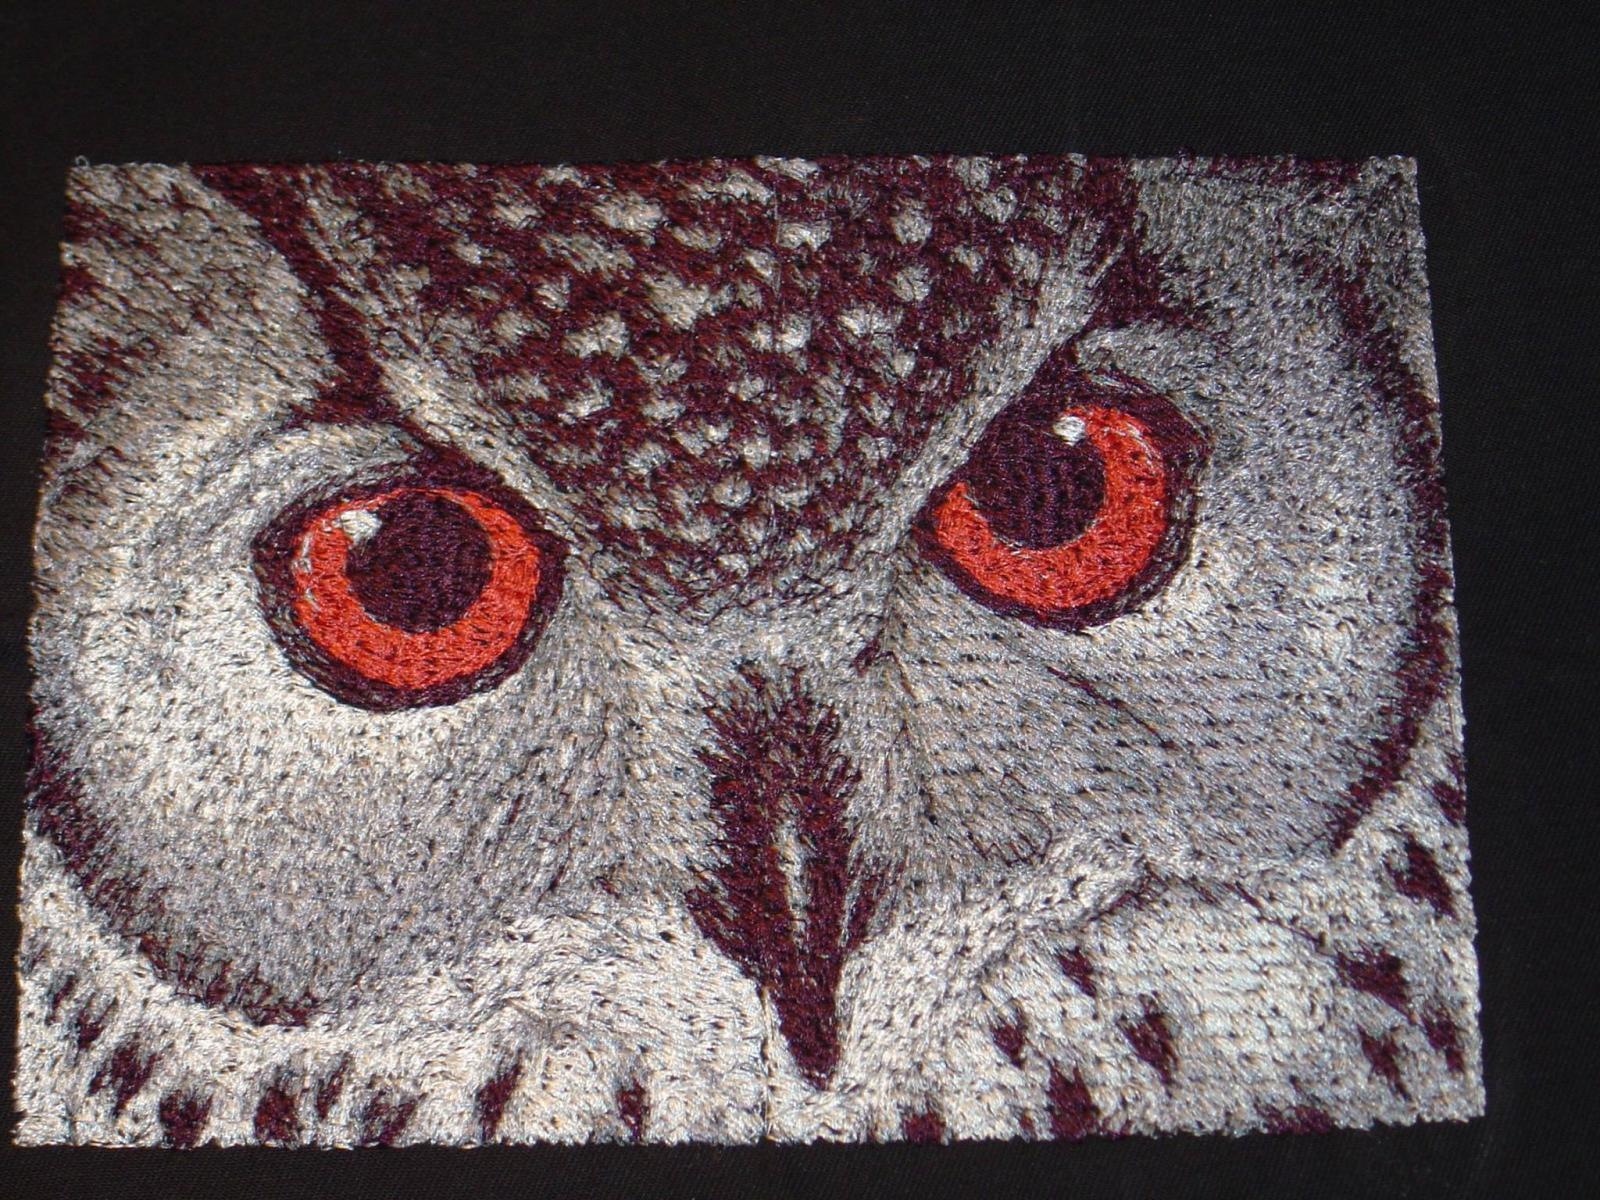 Owl photo stitch free embroidery design